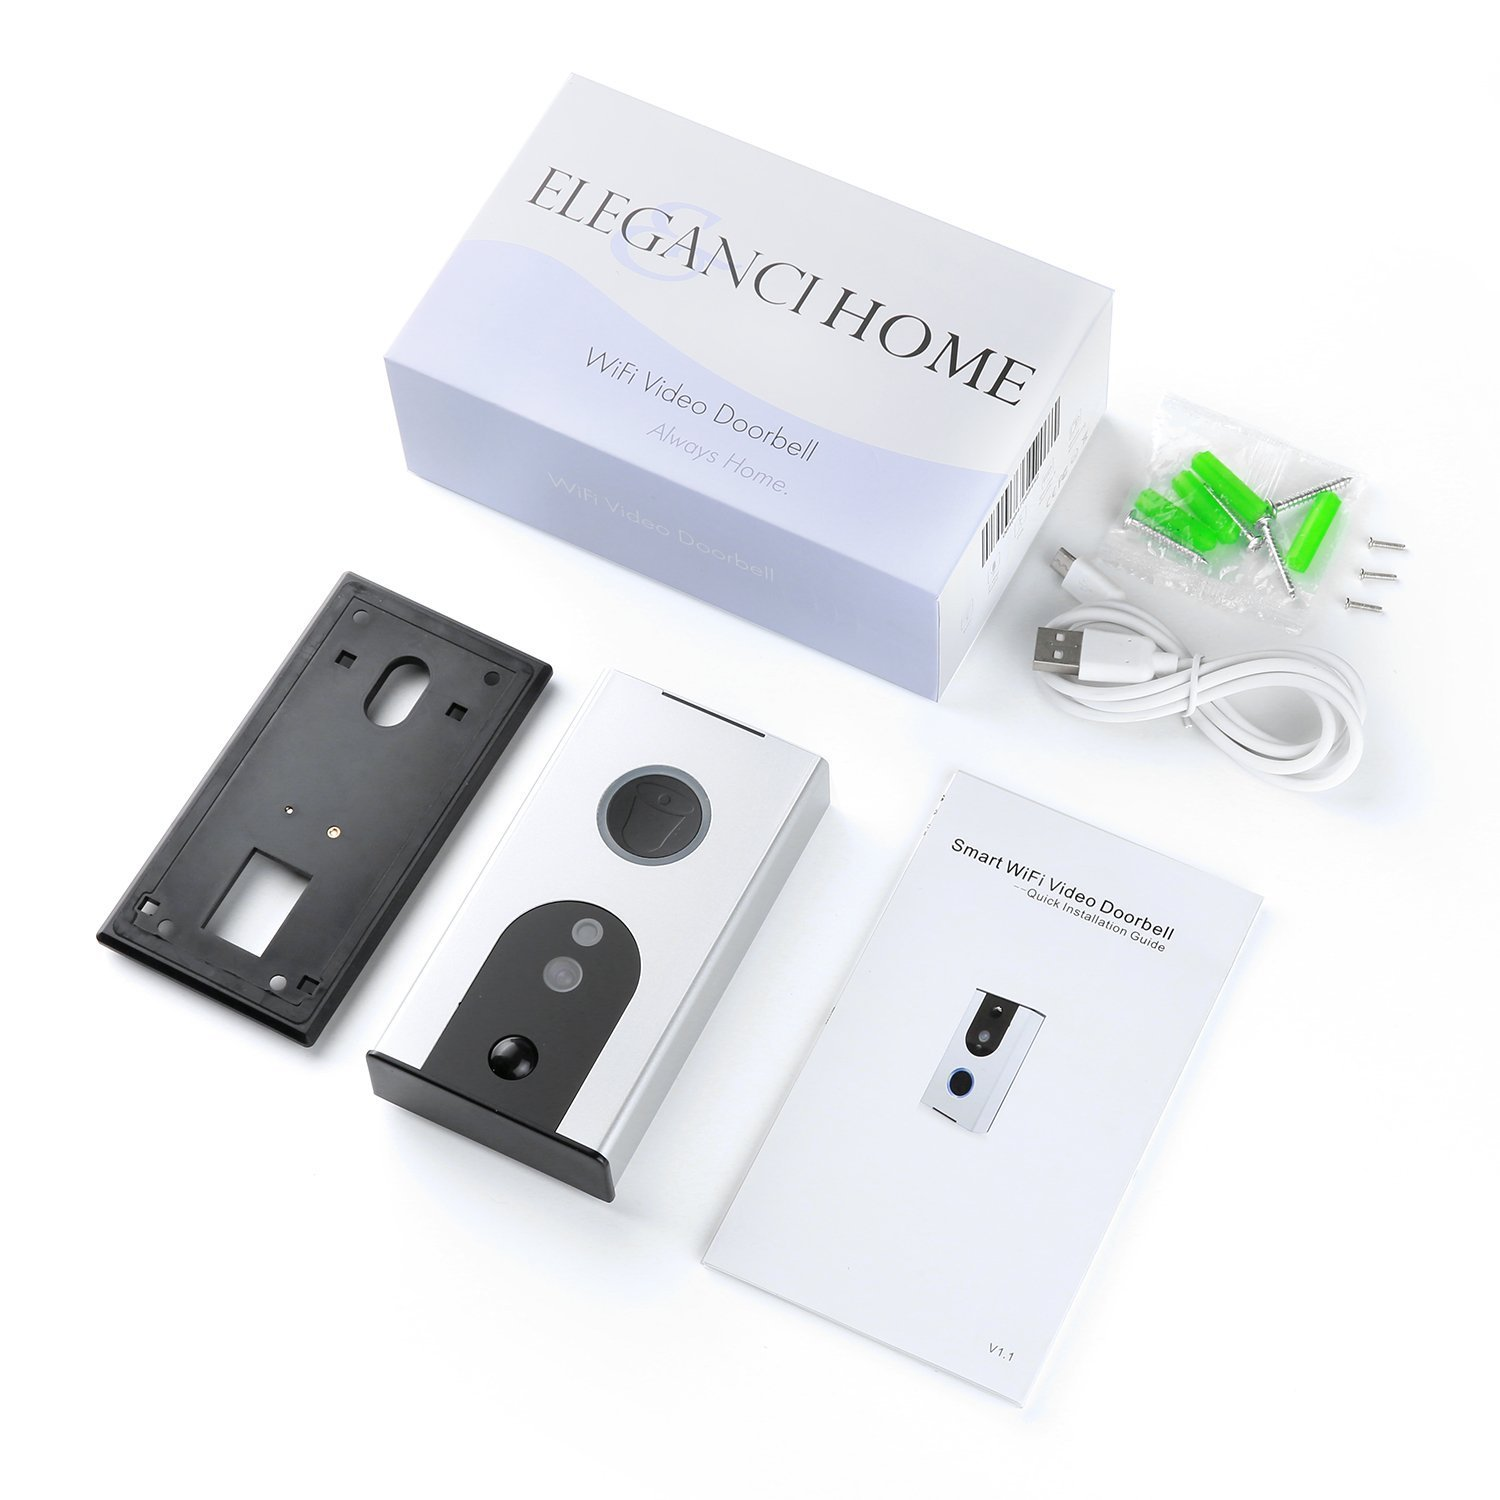 Battery Powered Wi-Fi Video Doorbell Camera, Wireless Doorbell Camera with Built in 8G card, Motion Detection, Night Vision, with Two Way Audio works with Iphone and Android by Eleganci Home by Eleganci Home (Image #3)